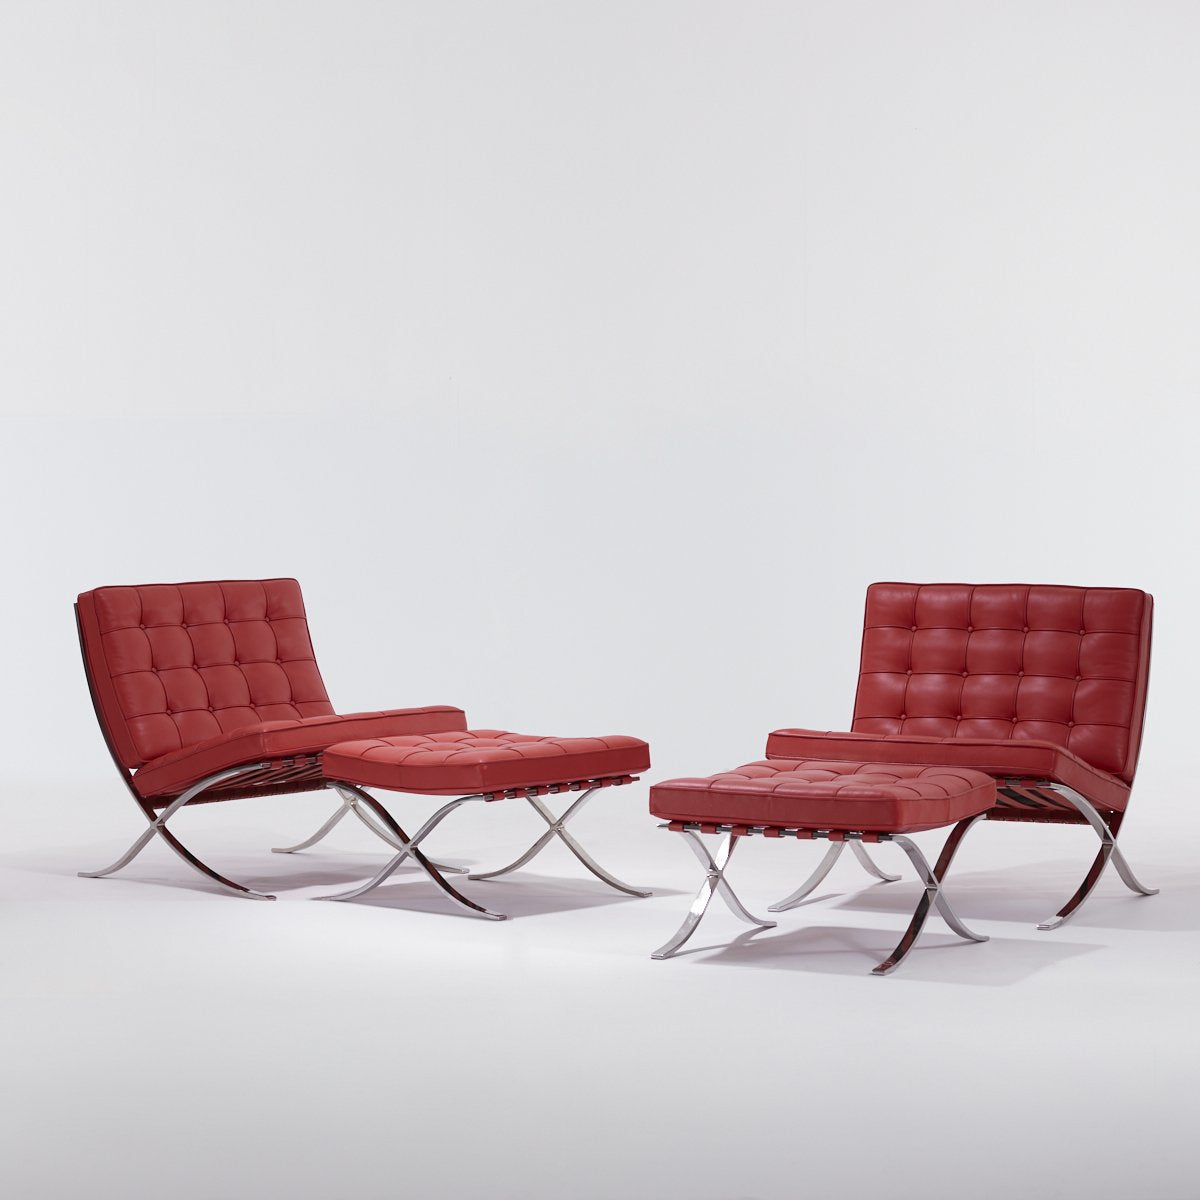 Original Ludwig Mies van der Rohe, Pair of Barcelona Chairs and Ottomans, Custom Order